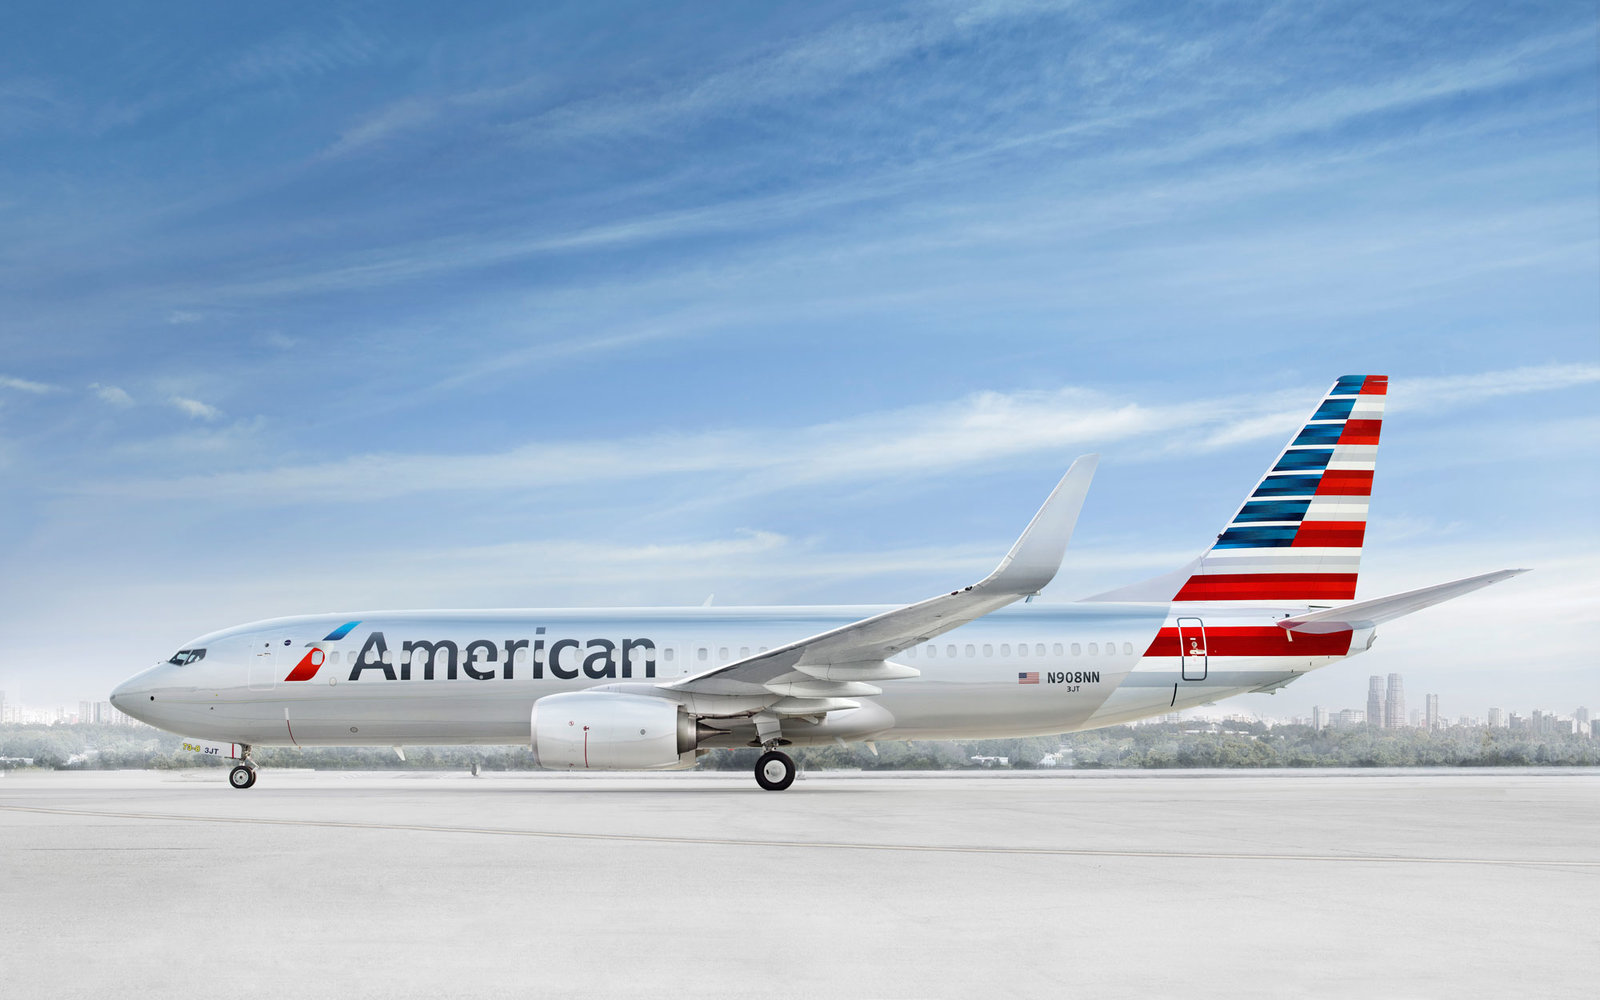 American Airlines Launches First Flights from West Coast